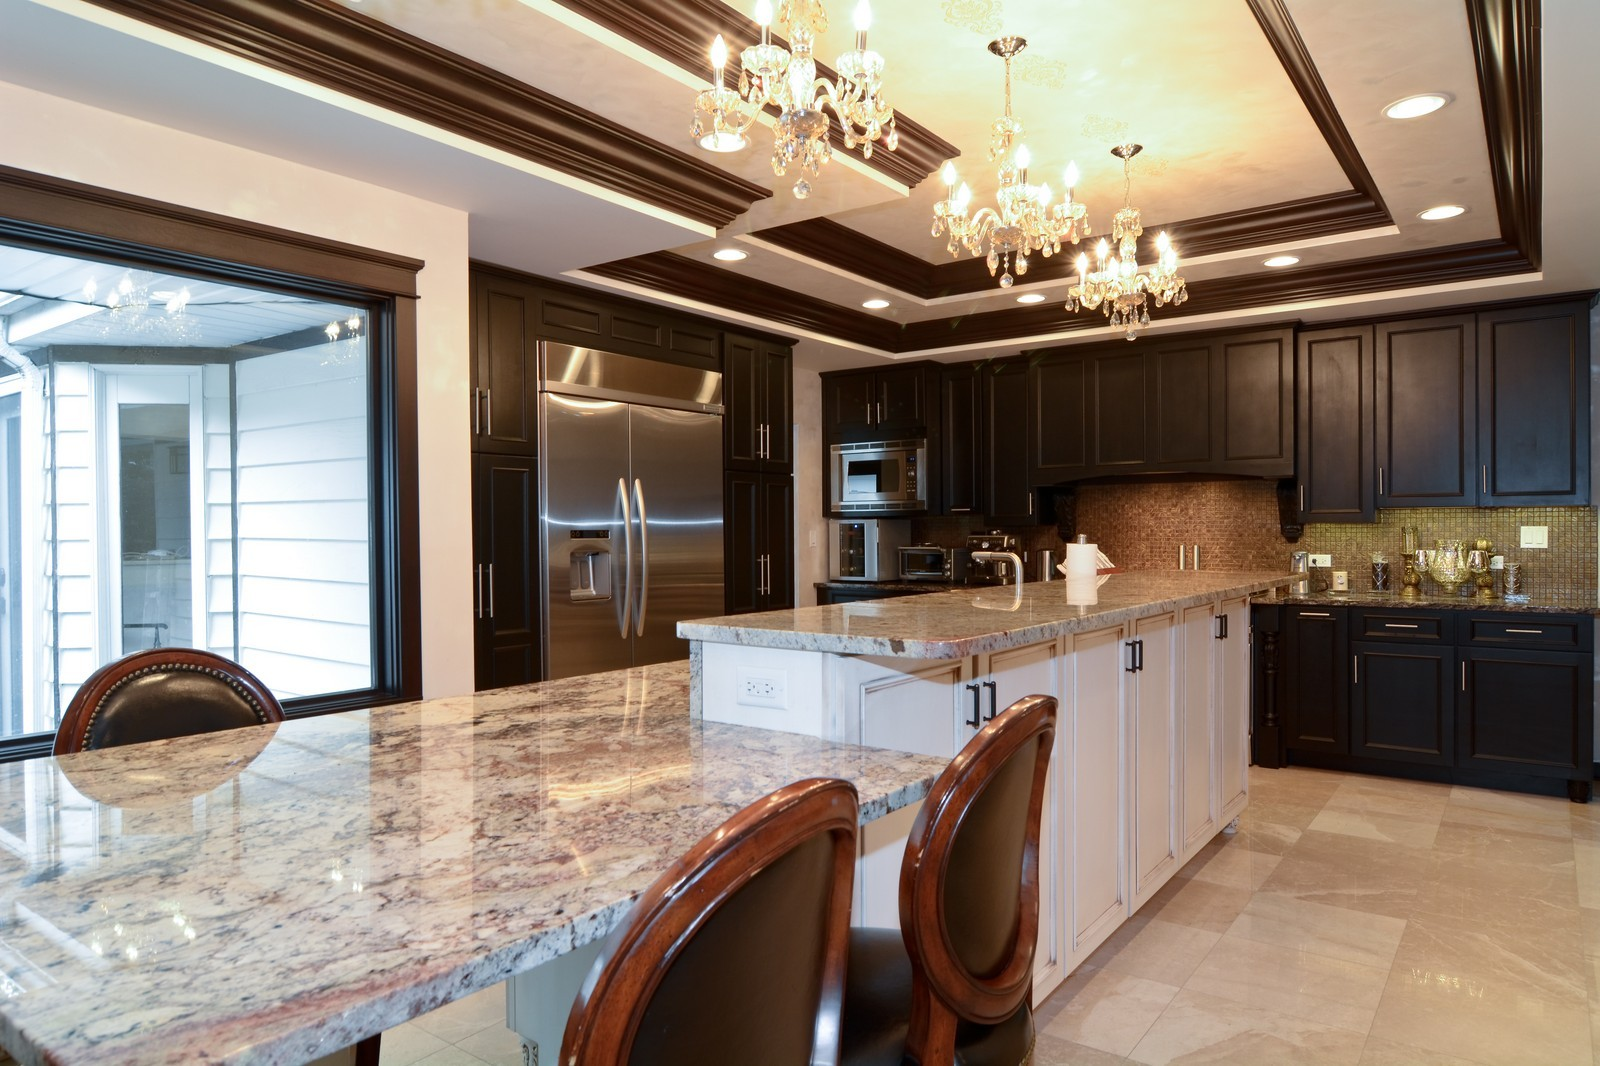 Real Estate Photography - 2S611 Arboritumn, Glen Ellyn, IL, 60137 - Kitchen